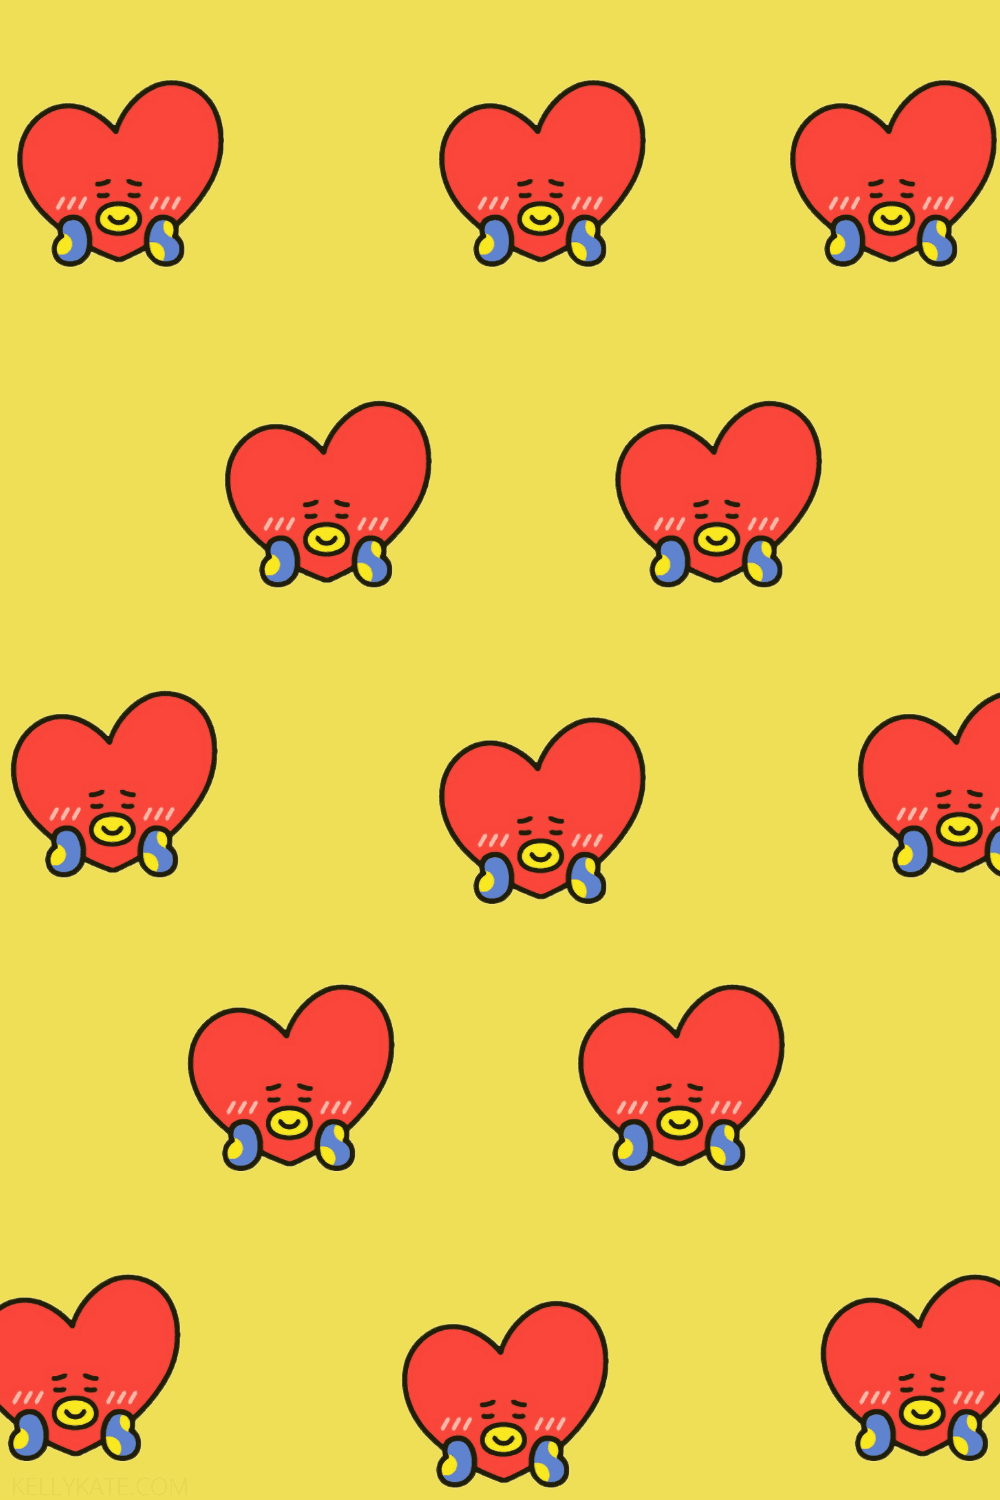 #wallpaperbt21 #bts #bt21